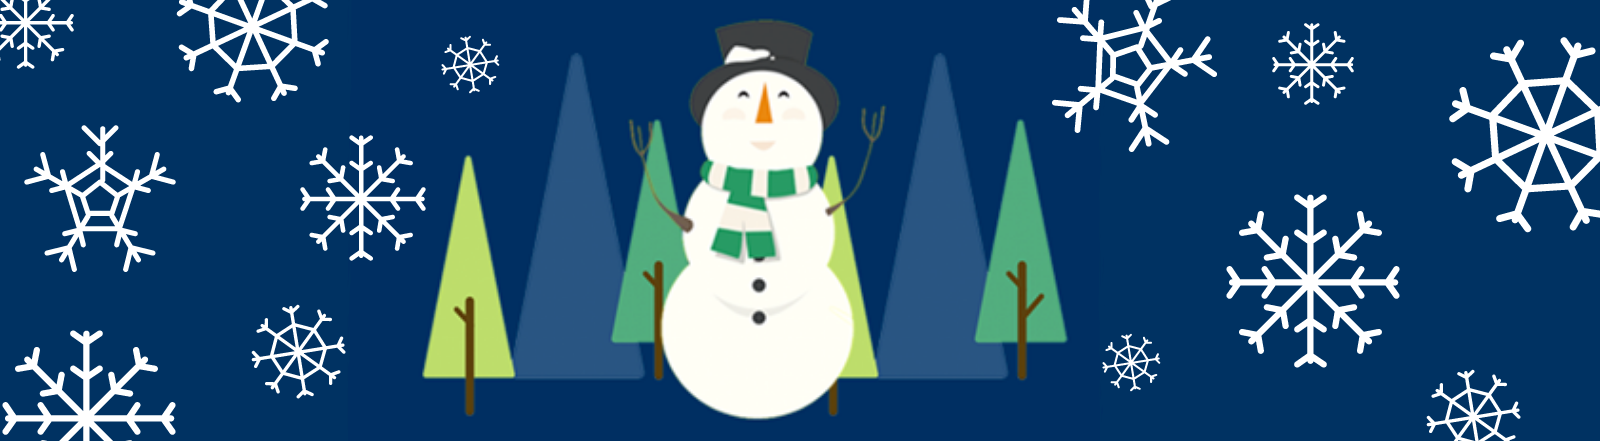 winter curtailment image of snowman and snowflakes